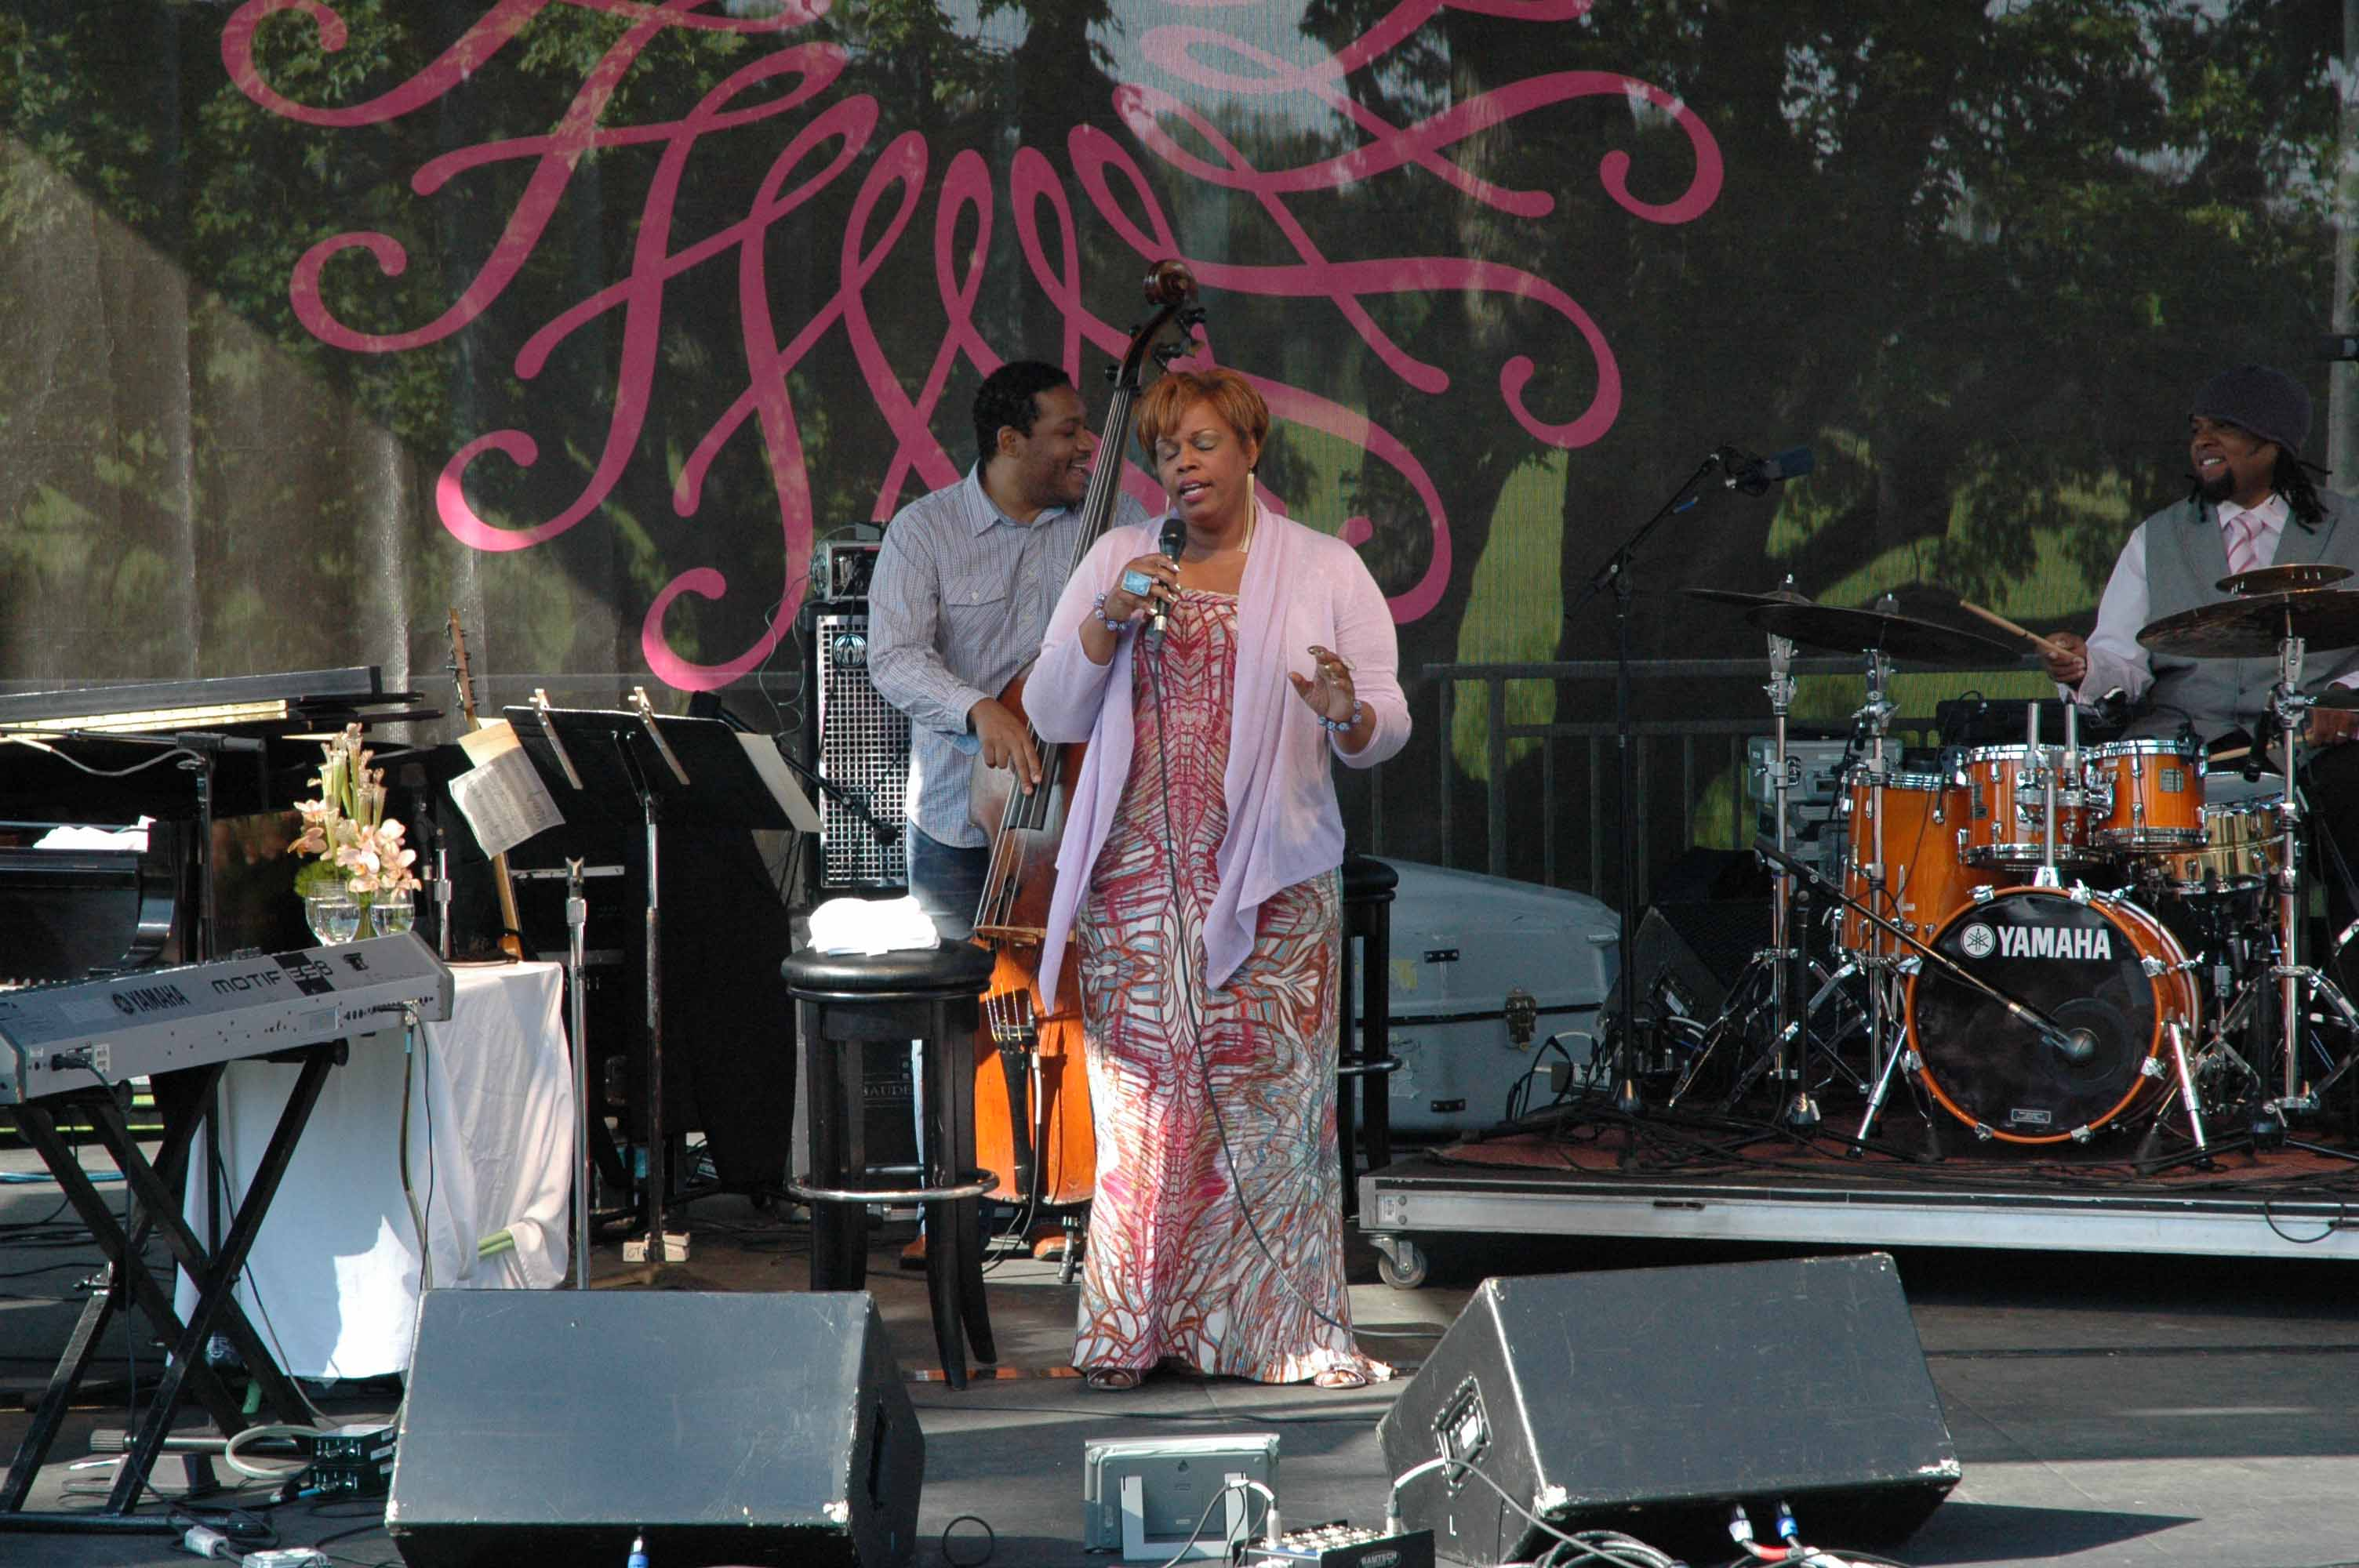 Dianne Reeves at Longwood Gardens